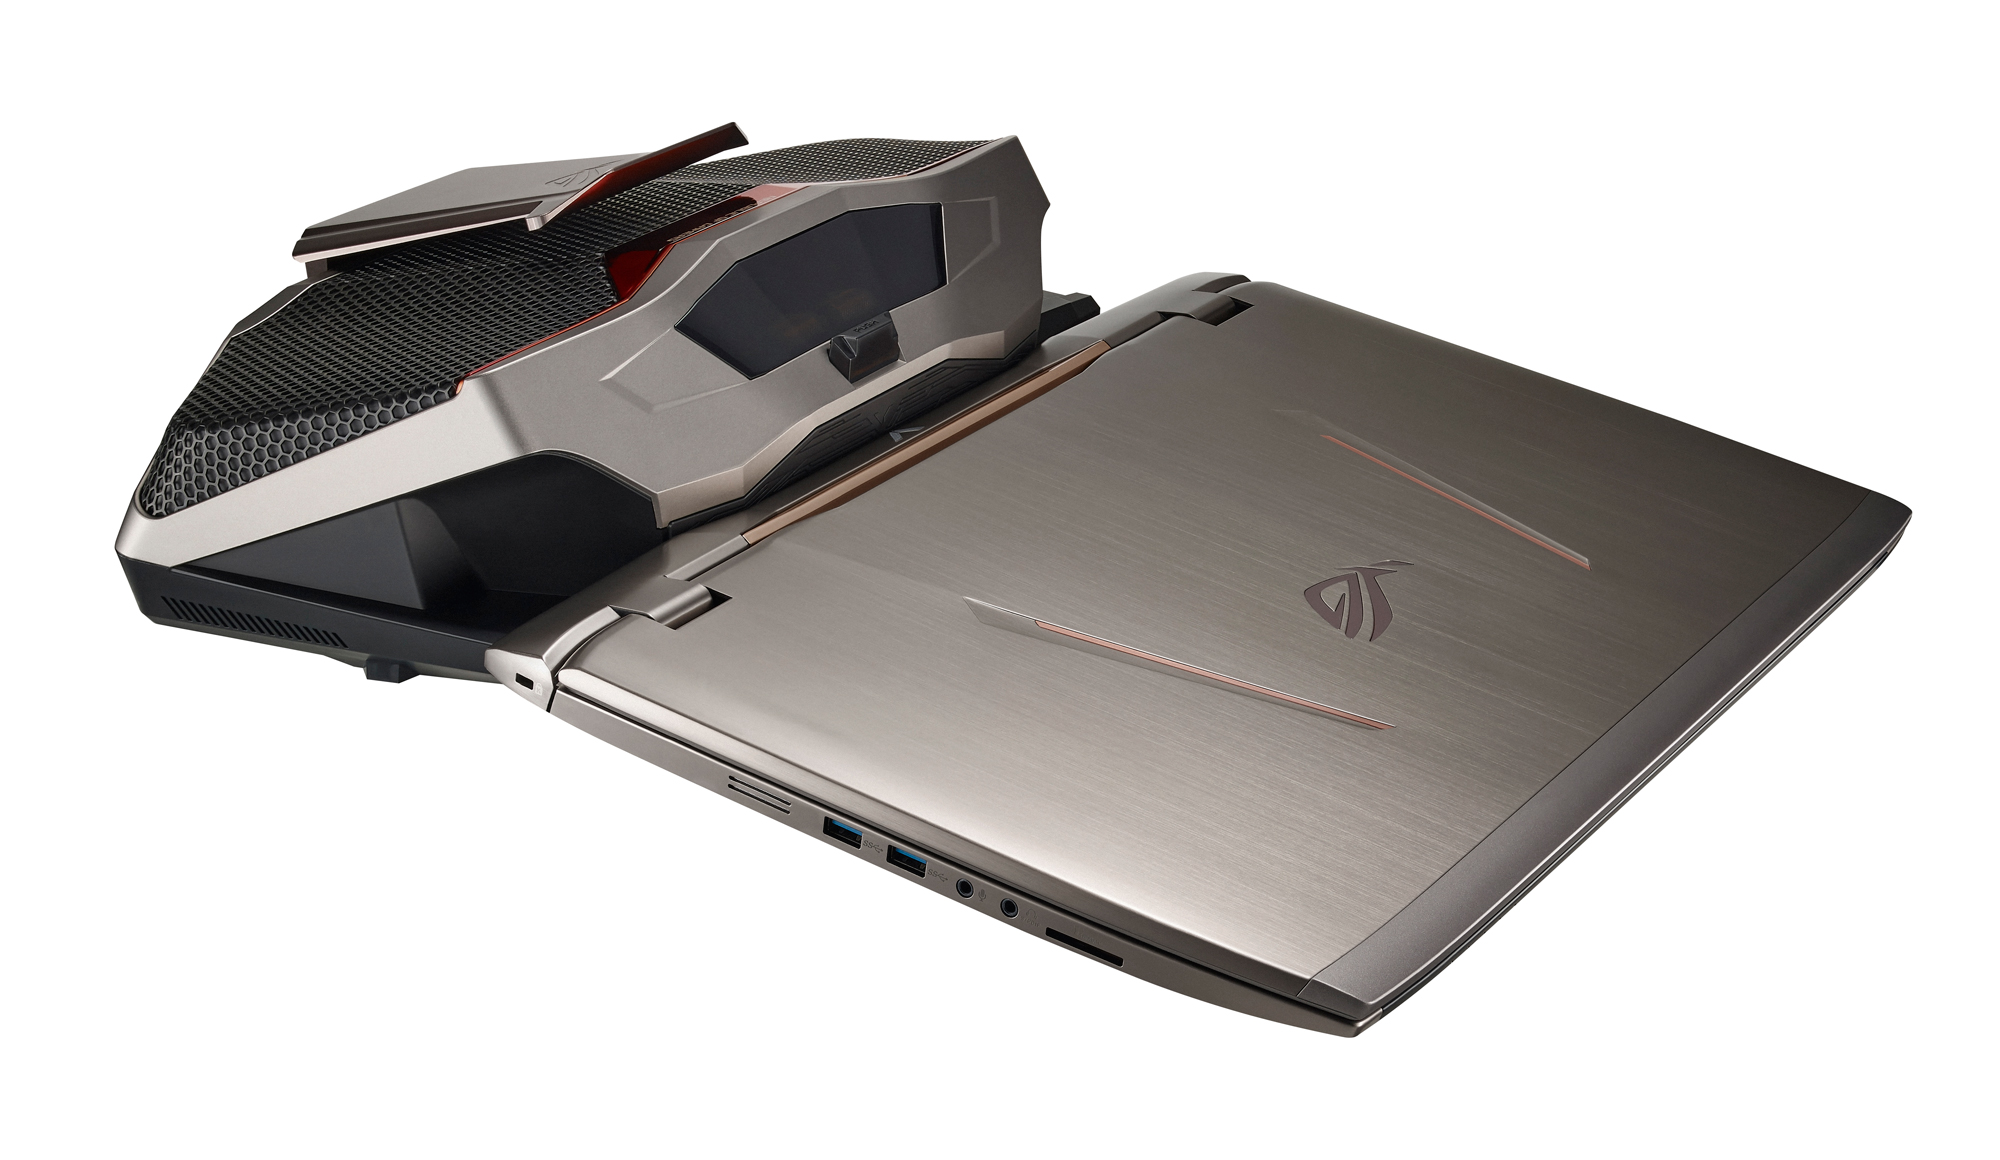 Gallery Asus Rog Gx700 Gaming Laptop With Liquid Cooling